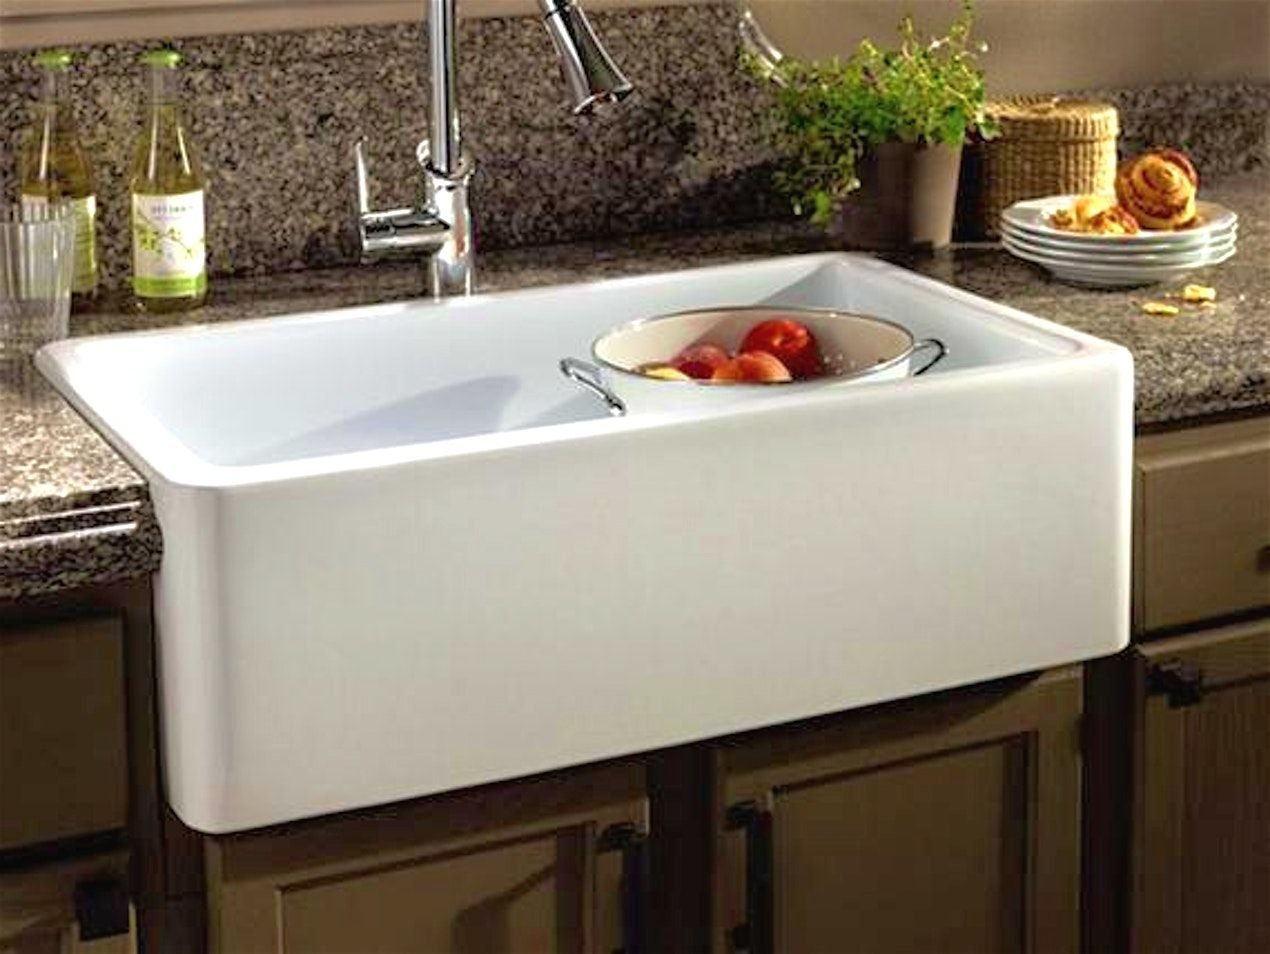 Farmhouse Sink With Laminate Countertops Recent Portrait Farmhouse Sink Laminate Countertops Sink